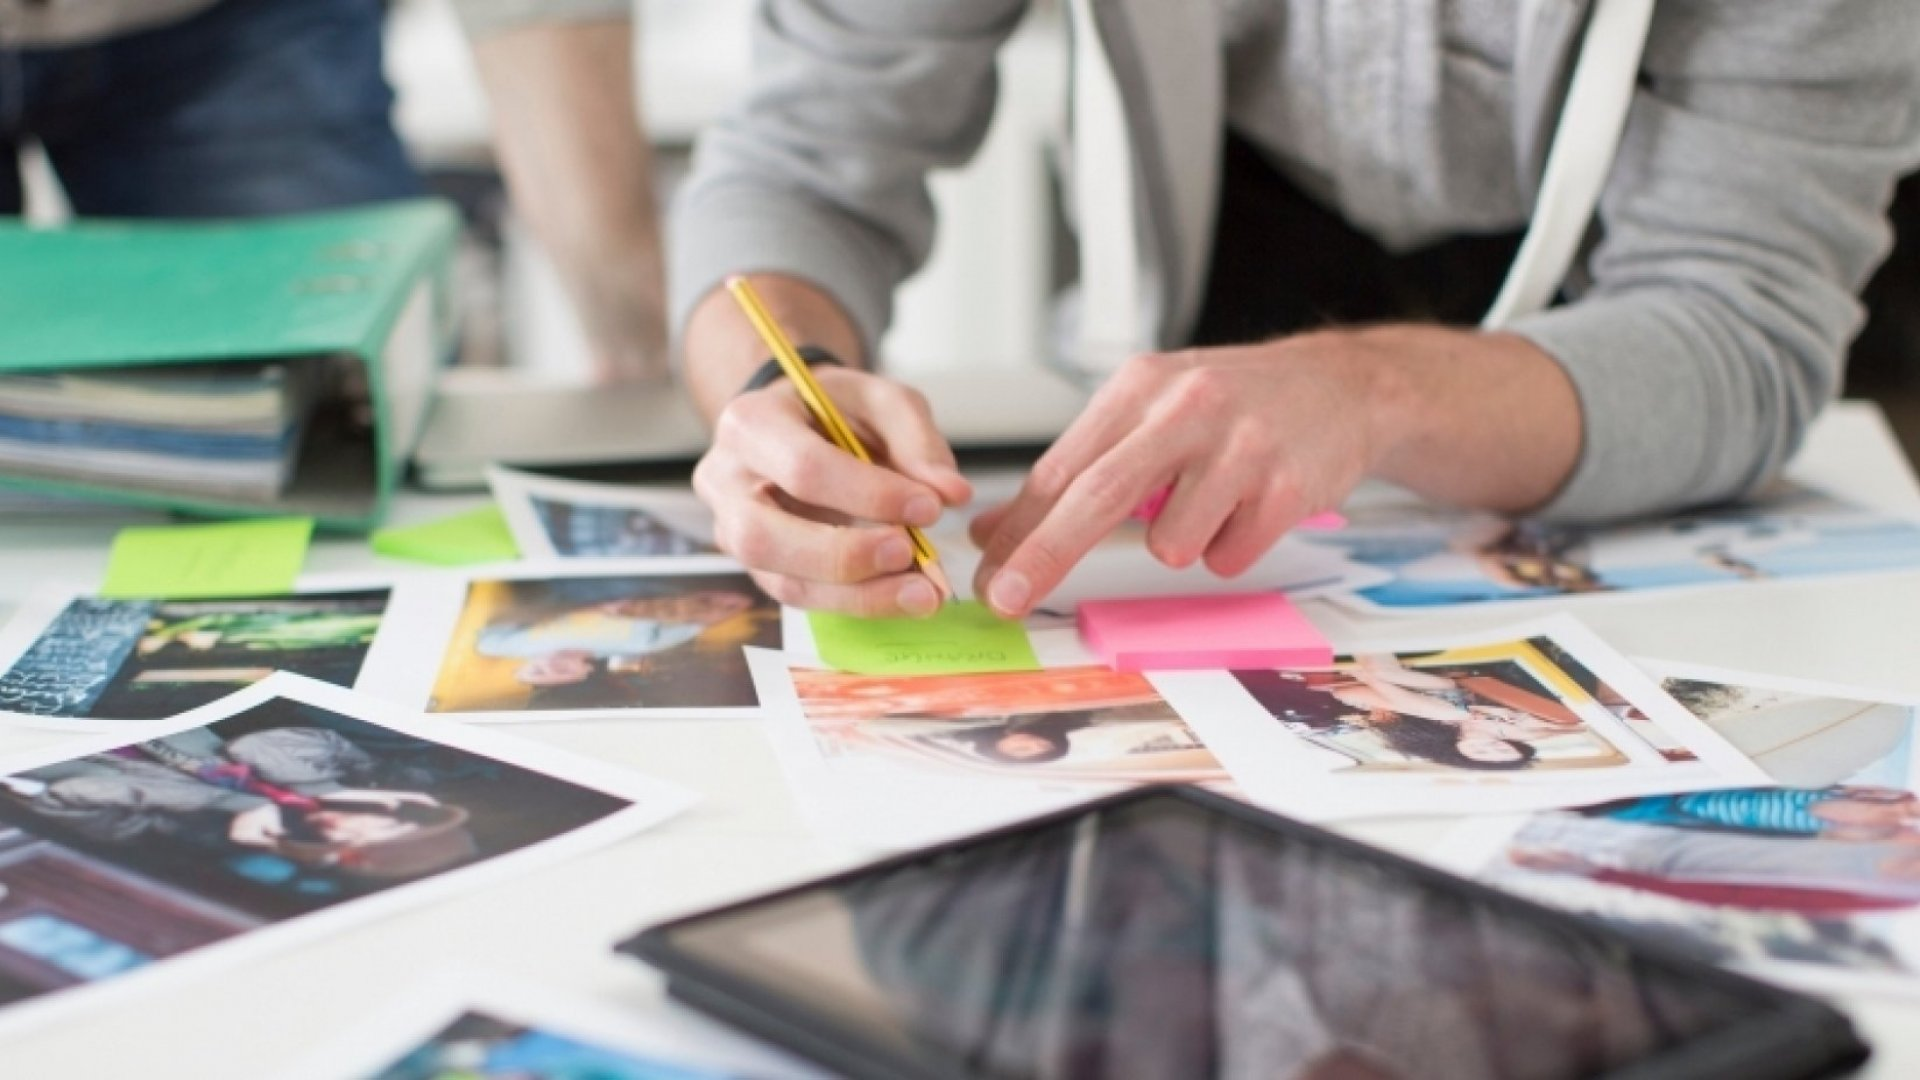 5 Creative Ways to Stay Ahead in a Changing Industry